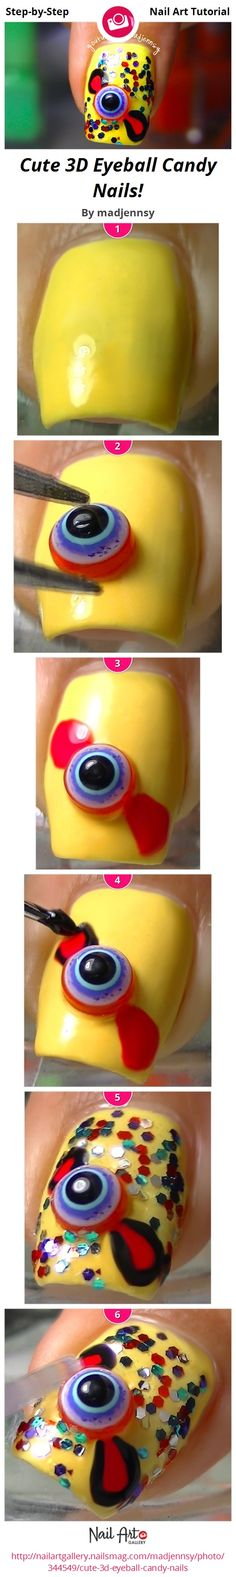 Cute 3D Eyeball Candy Nails! by madjennsy - Nail Art Gallery Step-by-Step Tutorials nailartgallery.nailsmag.com by Nails Magazine www.nailsmag.com #nailart